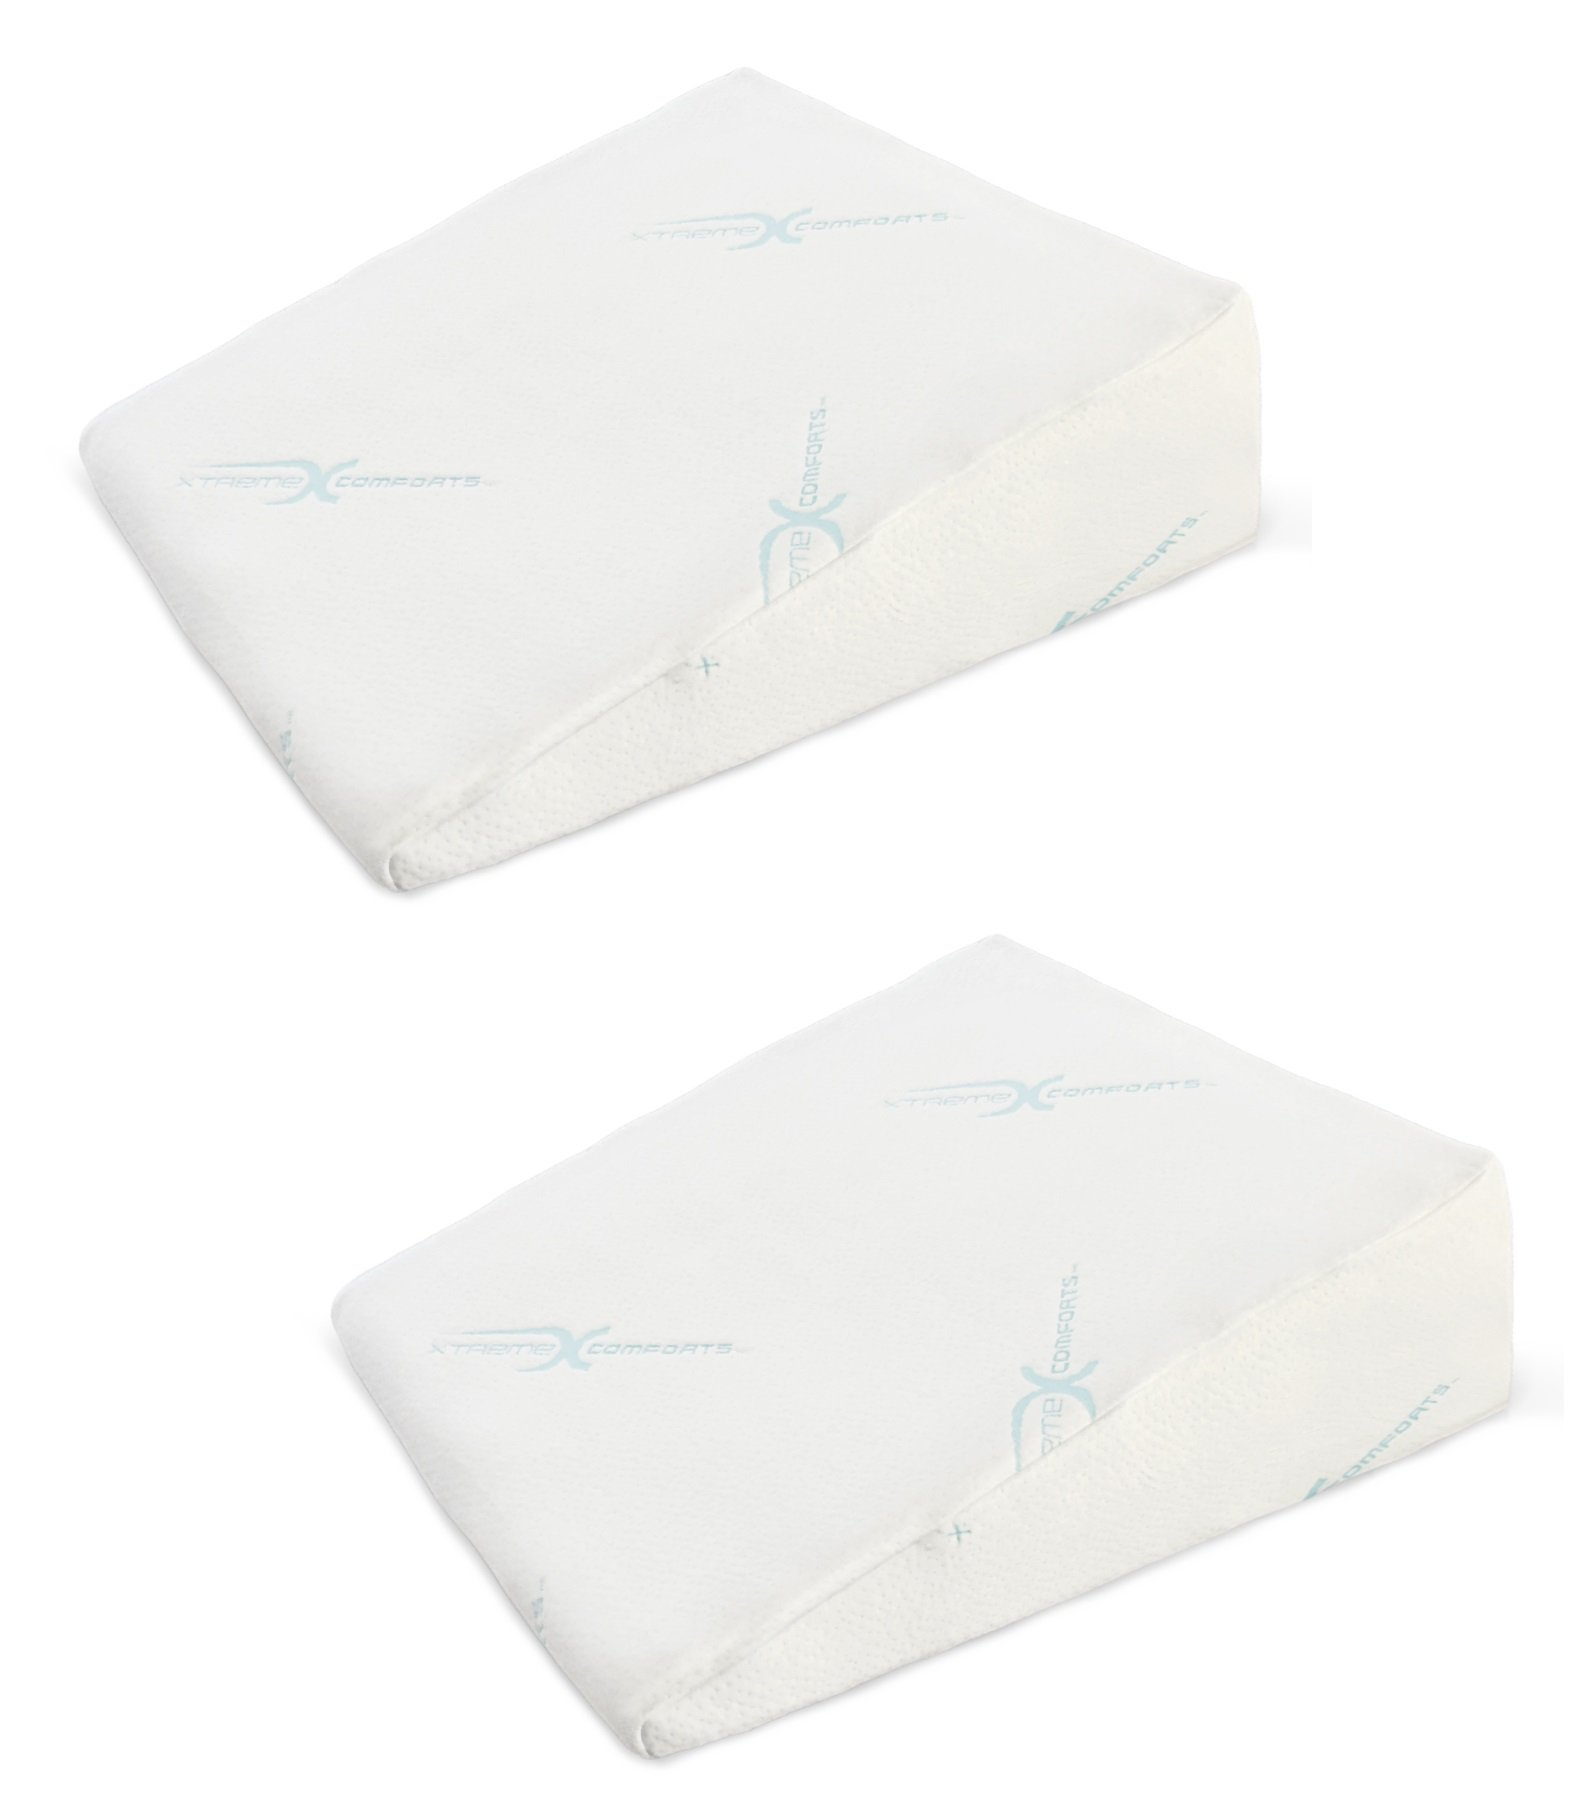 Xtreme Comforts 7'' Memory Foam Bed Wedge Pillow, Hypoallergenic Breathable, Washable Bamboo Cover, Elevated Support Cushion, Acid Reflux, Lower Back Pain, Heartburn, Snoring (2 Pack) by Xtreme Comforts